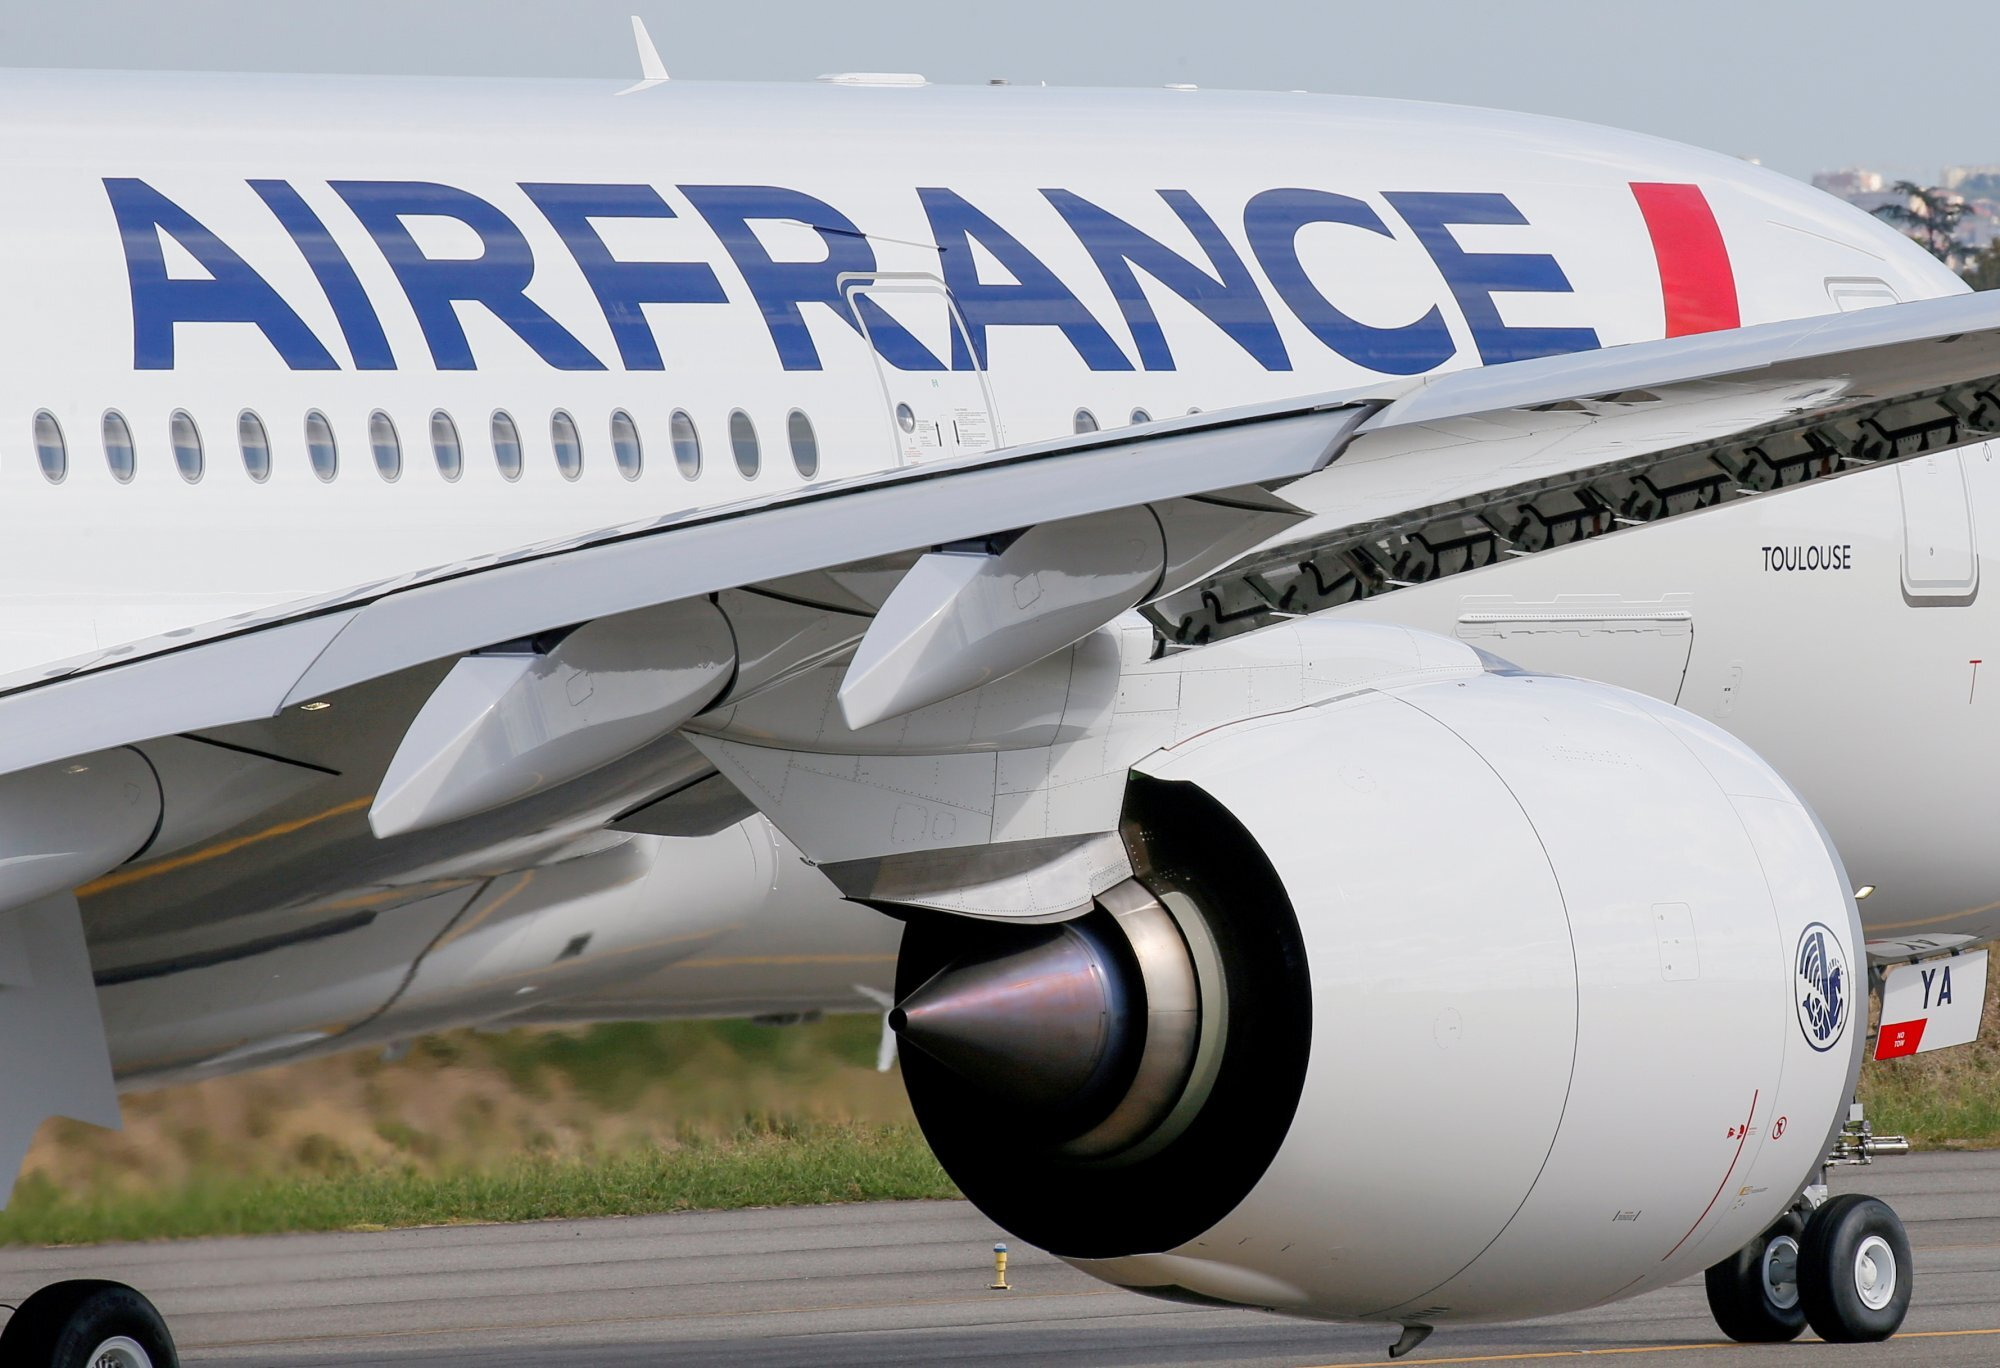 Daillet, his partner and the children are set to arrive in Paris on Monday aboard an Air France flight from Singapore. Photo: Reuters